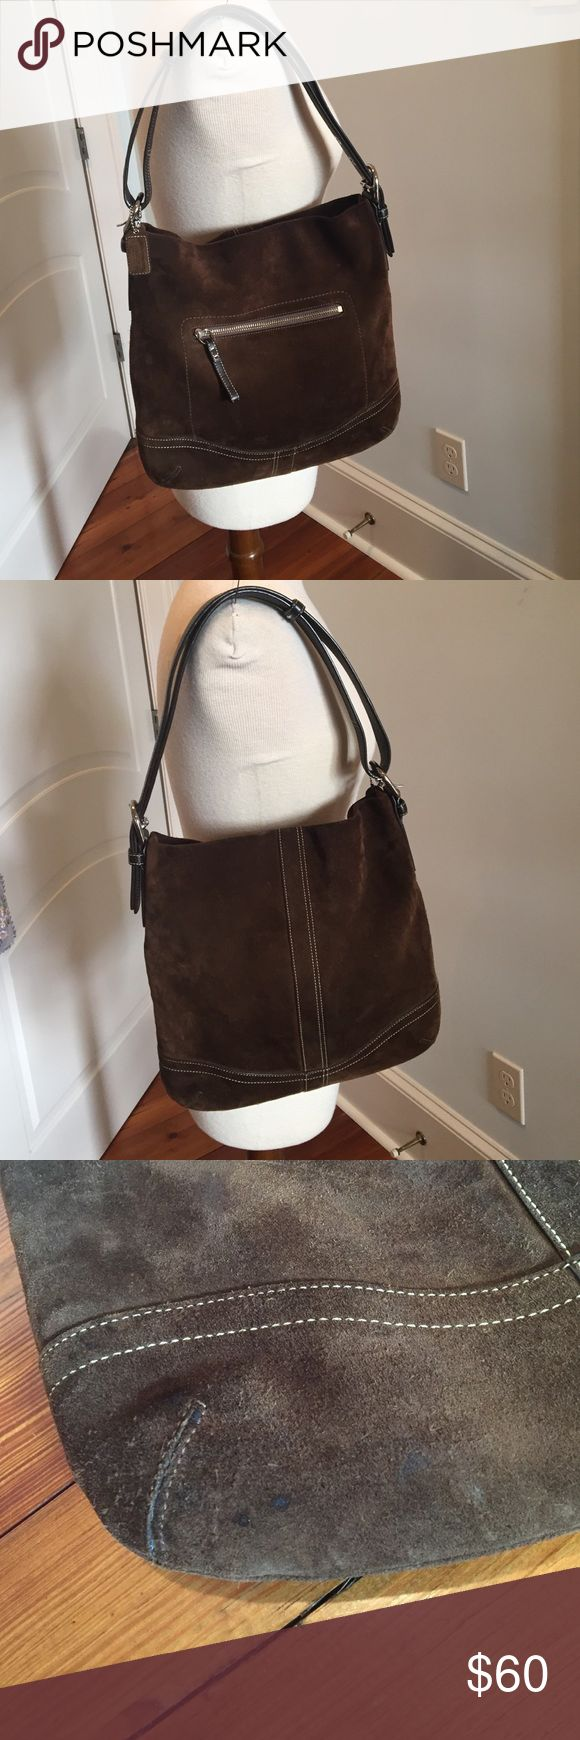 Coach brown suede hobo shoulder bag Gently loved brown suede Coach shoulder hobo bag. Pristine interior. Small barely noticeable scuffs at bottom and on backside. Coach Bags Shoulder Bags